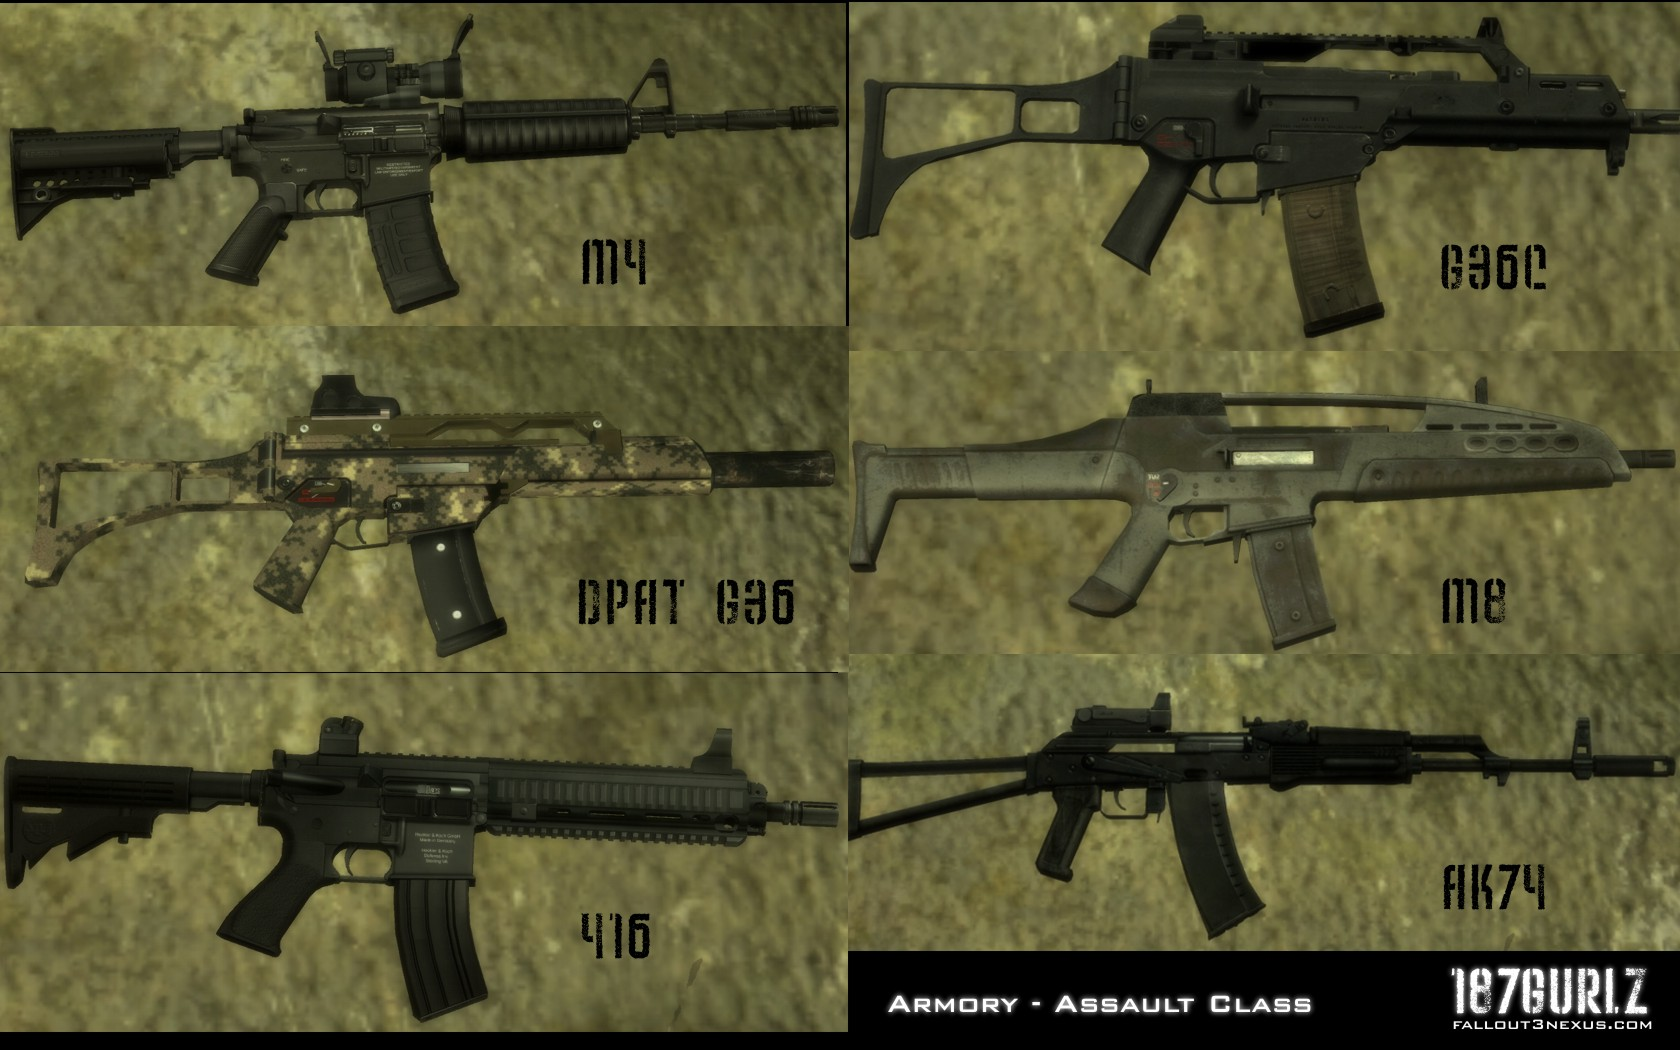 SCC 187 GURLZ Weapons Reloaded at Fallout3 Nexus - mods and